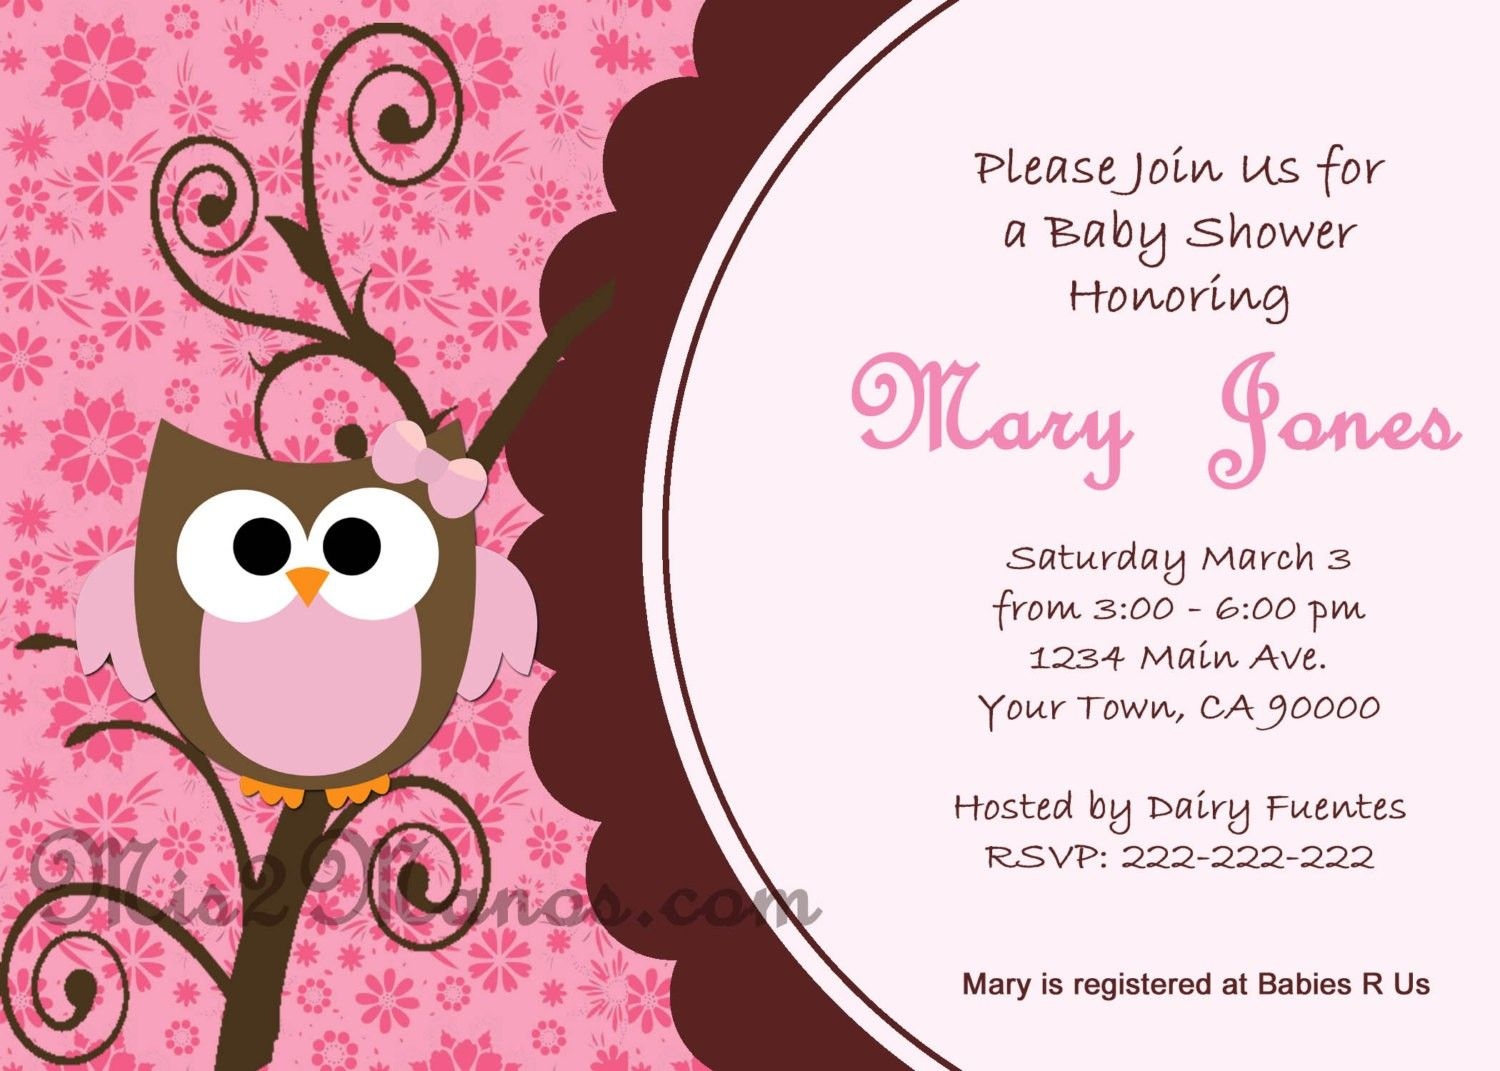 Baby Shower Invitation Template Microsoft Word 1000 images about – Free Baby Shower Downloadable Invitation Templates